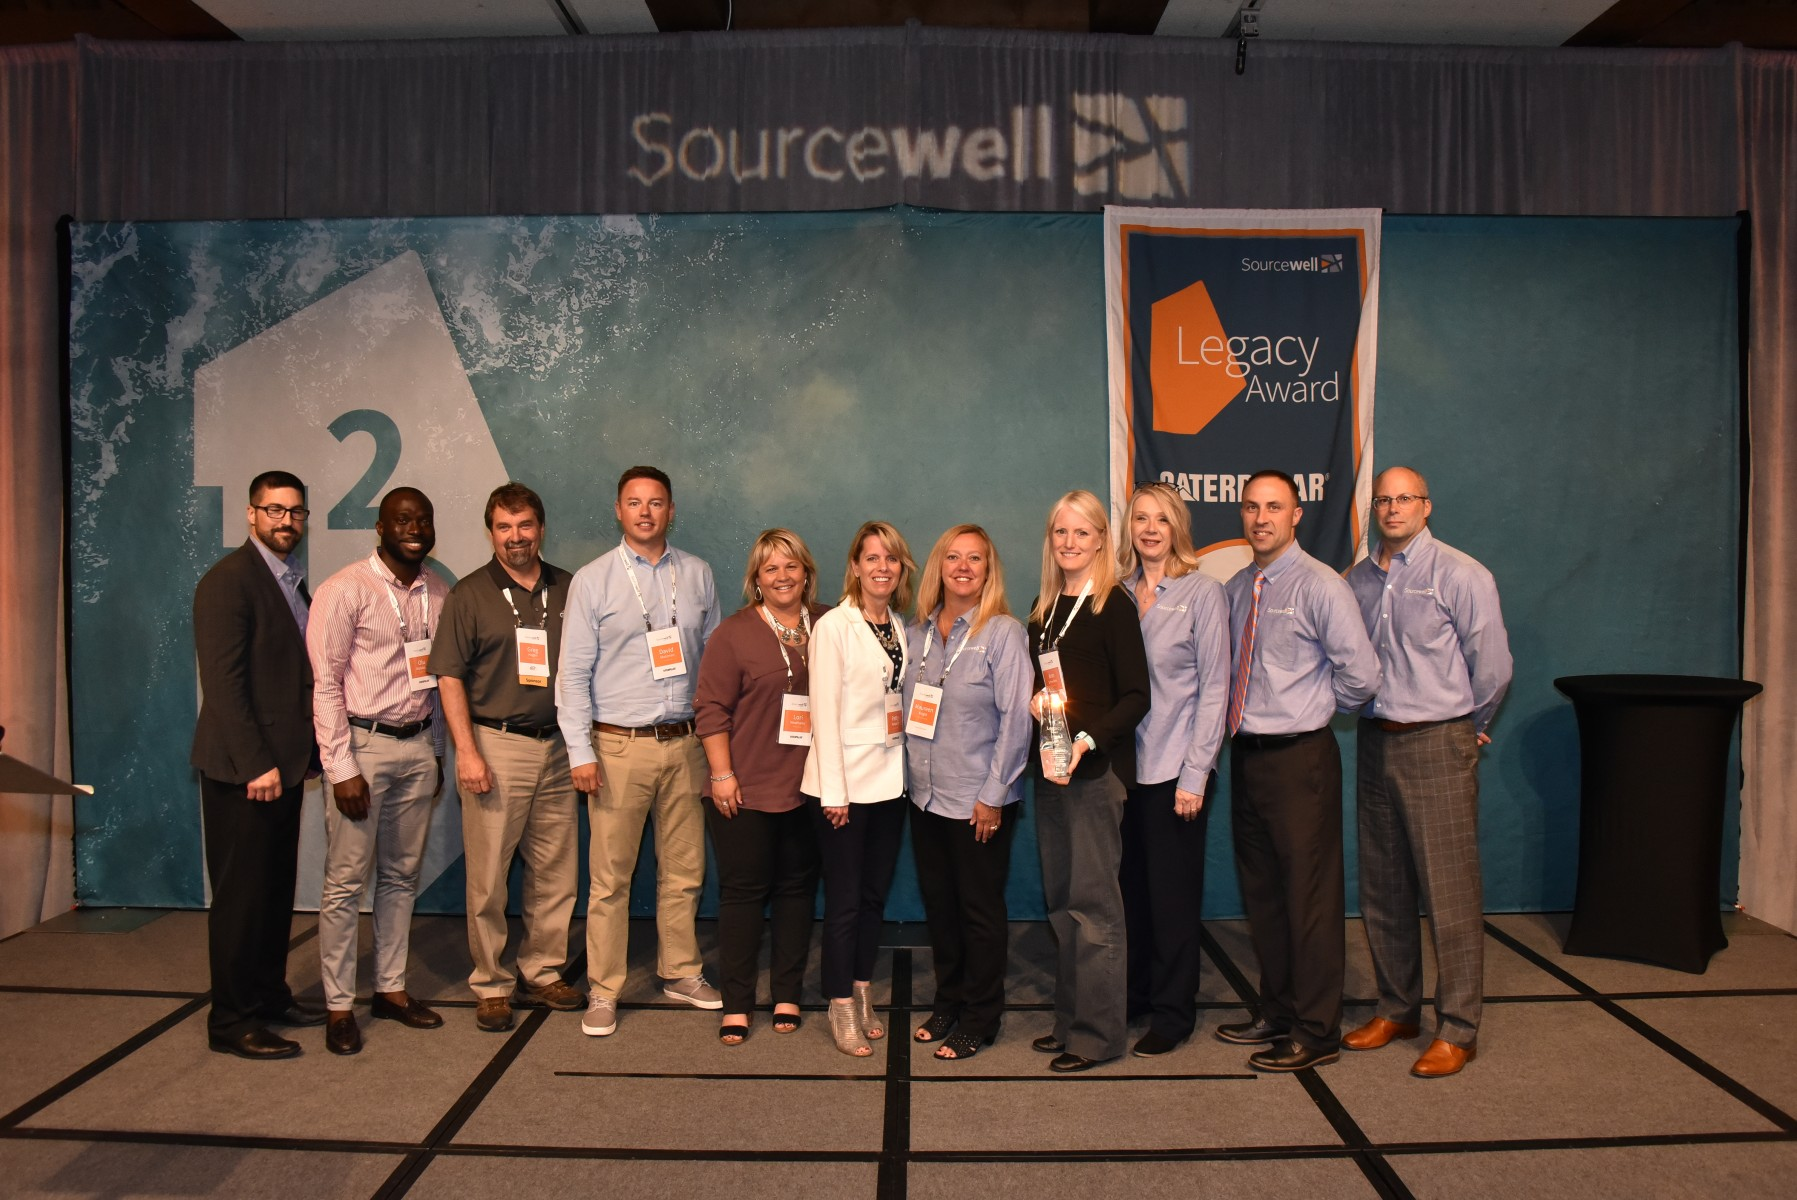 Caterpillar received the 2019 Sourcewell Legacy Award at the 12th annual H2O Vendor Forum in Minnesota